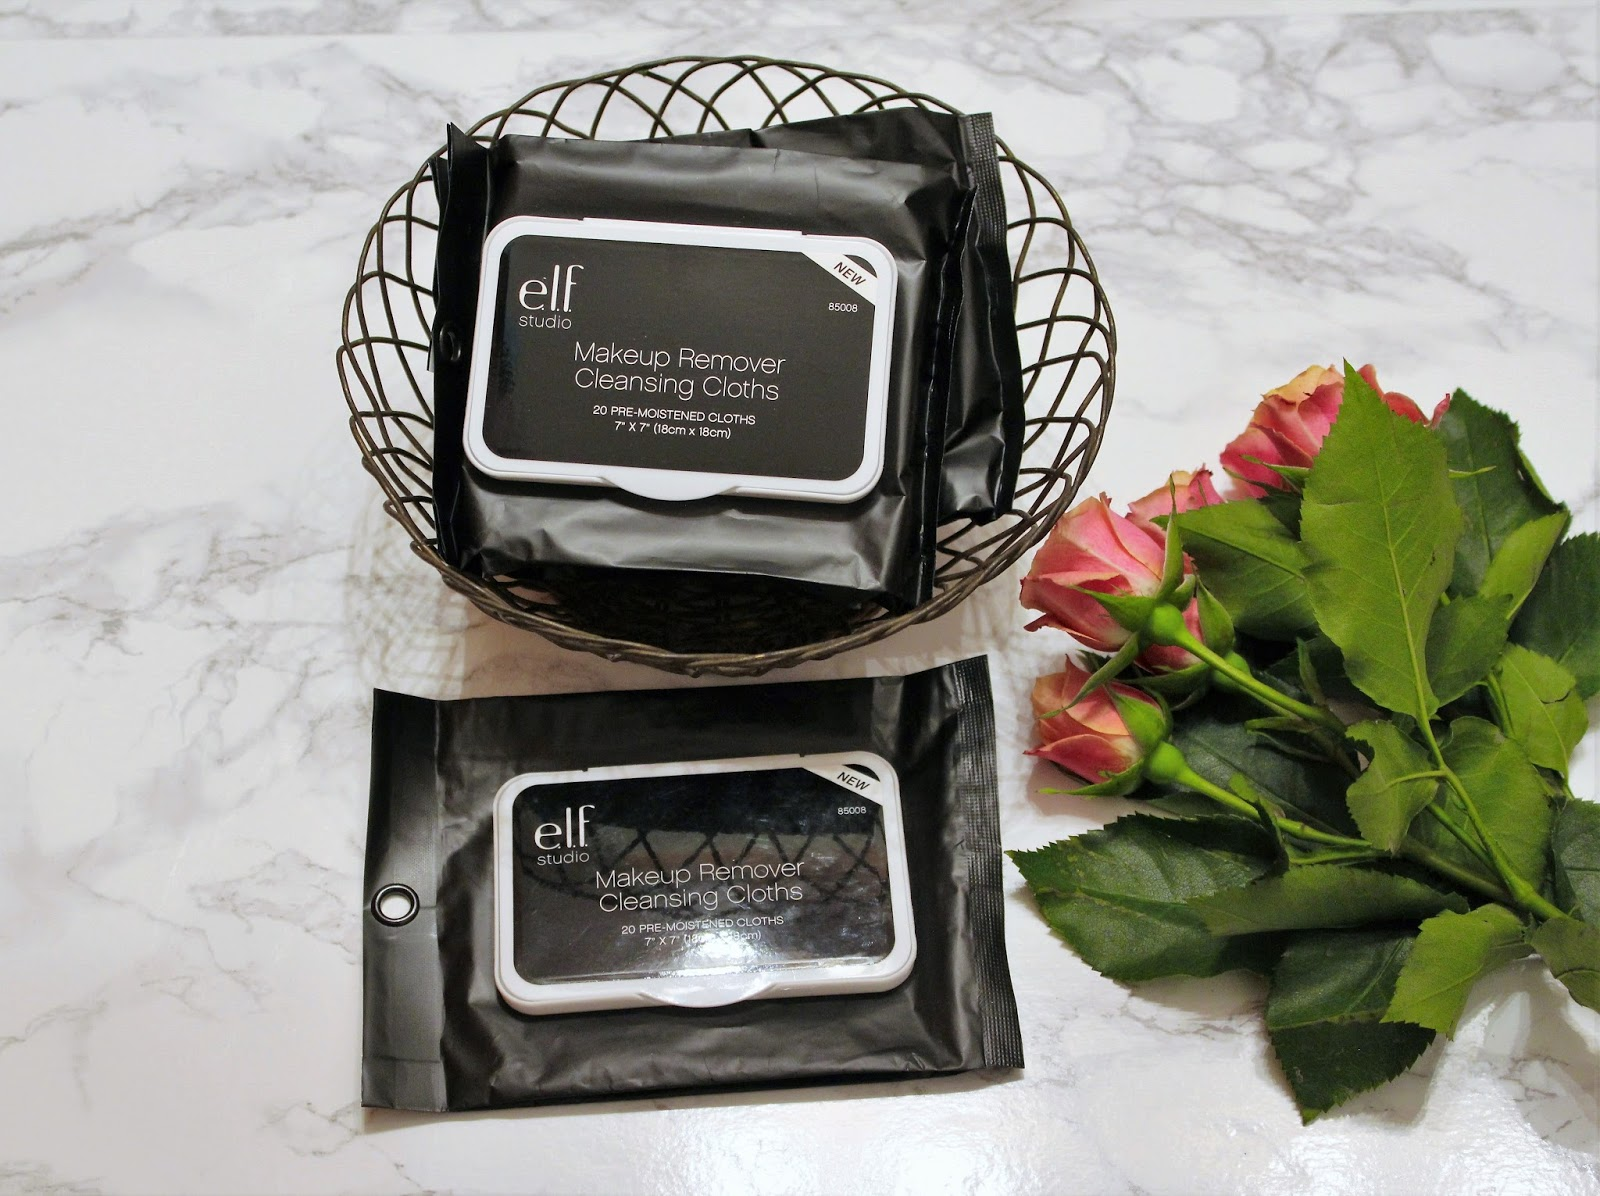 Running Low on Lipstick: e.l.f. Studio Makeup Remover Cleansing Cloths